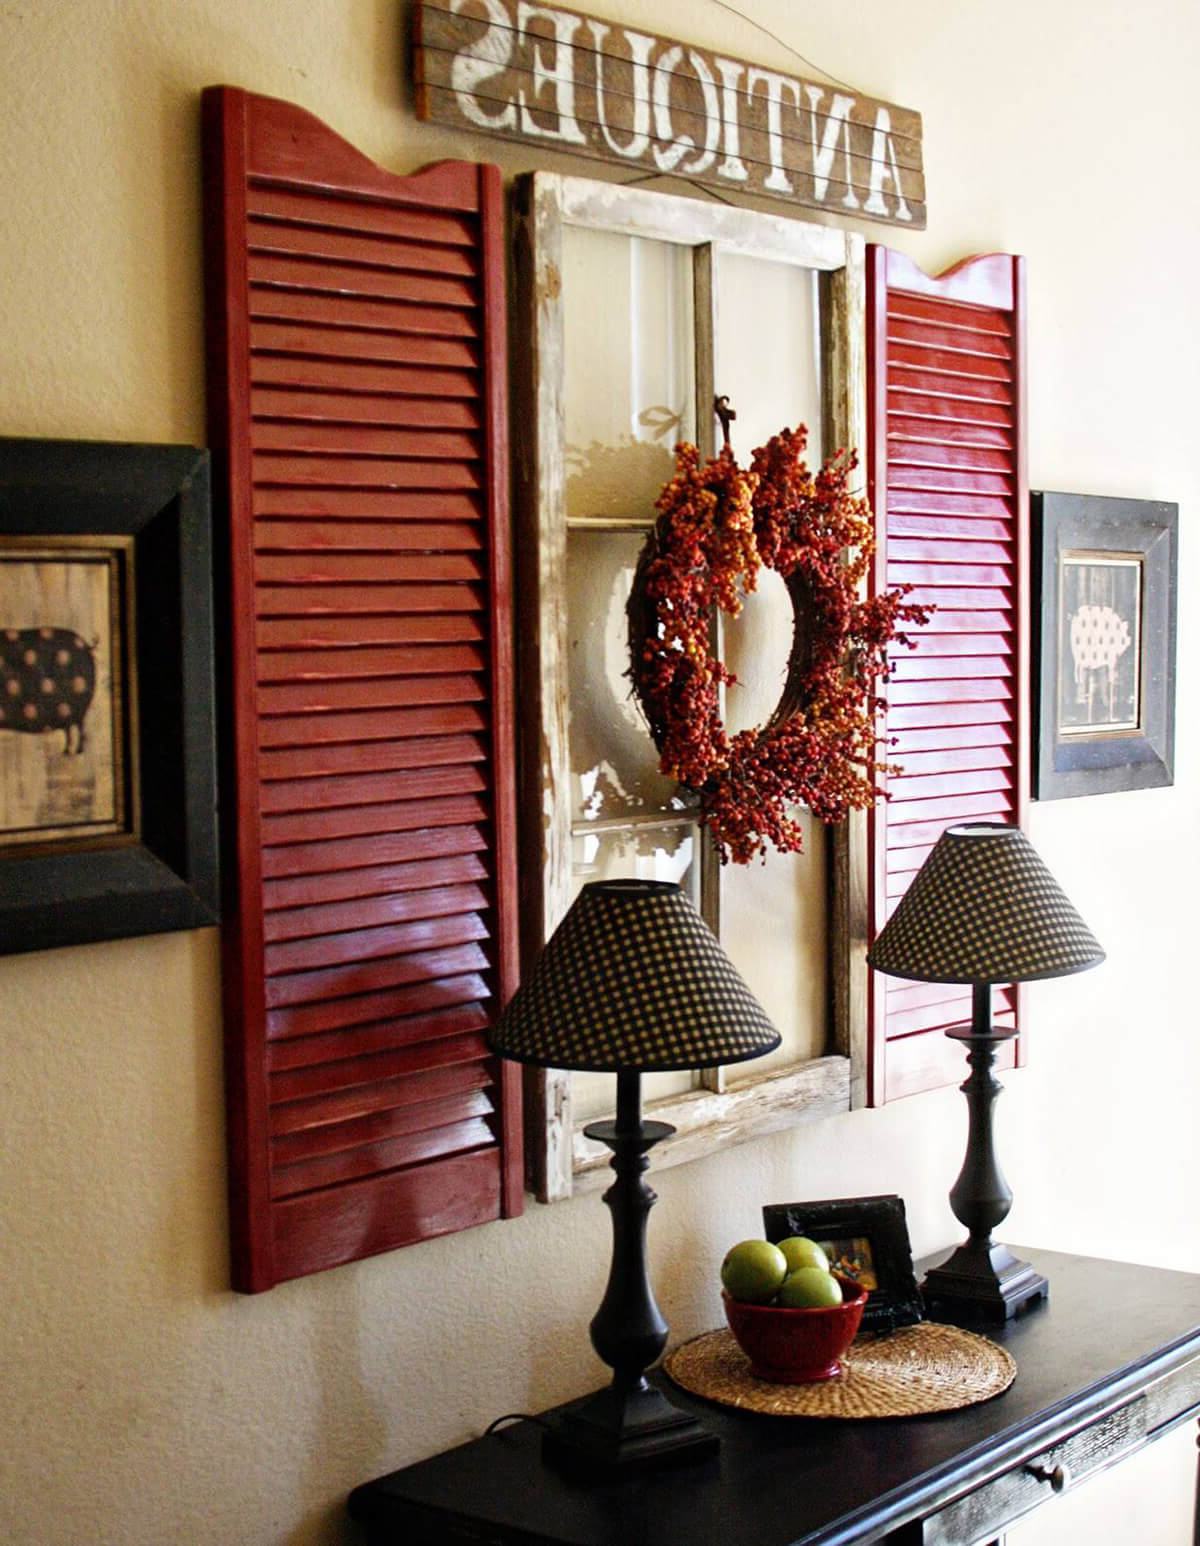 Shutter Window Hanging Wall Decor With Regard To Trendy 34 Best Old Shutter Decoration Ideas And Designs For (View 7 of 20)